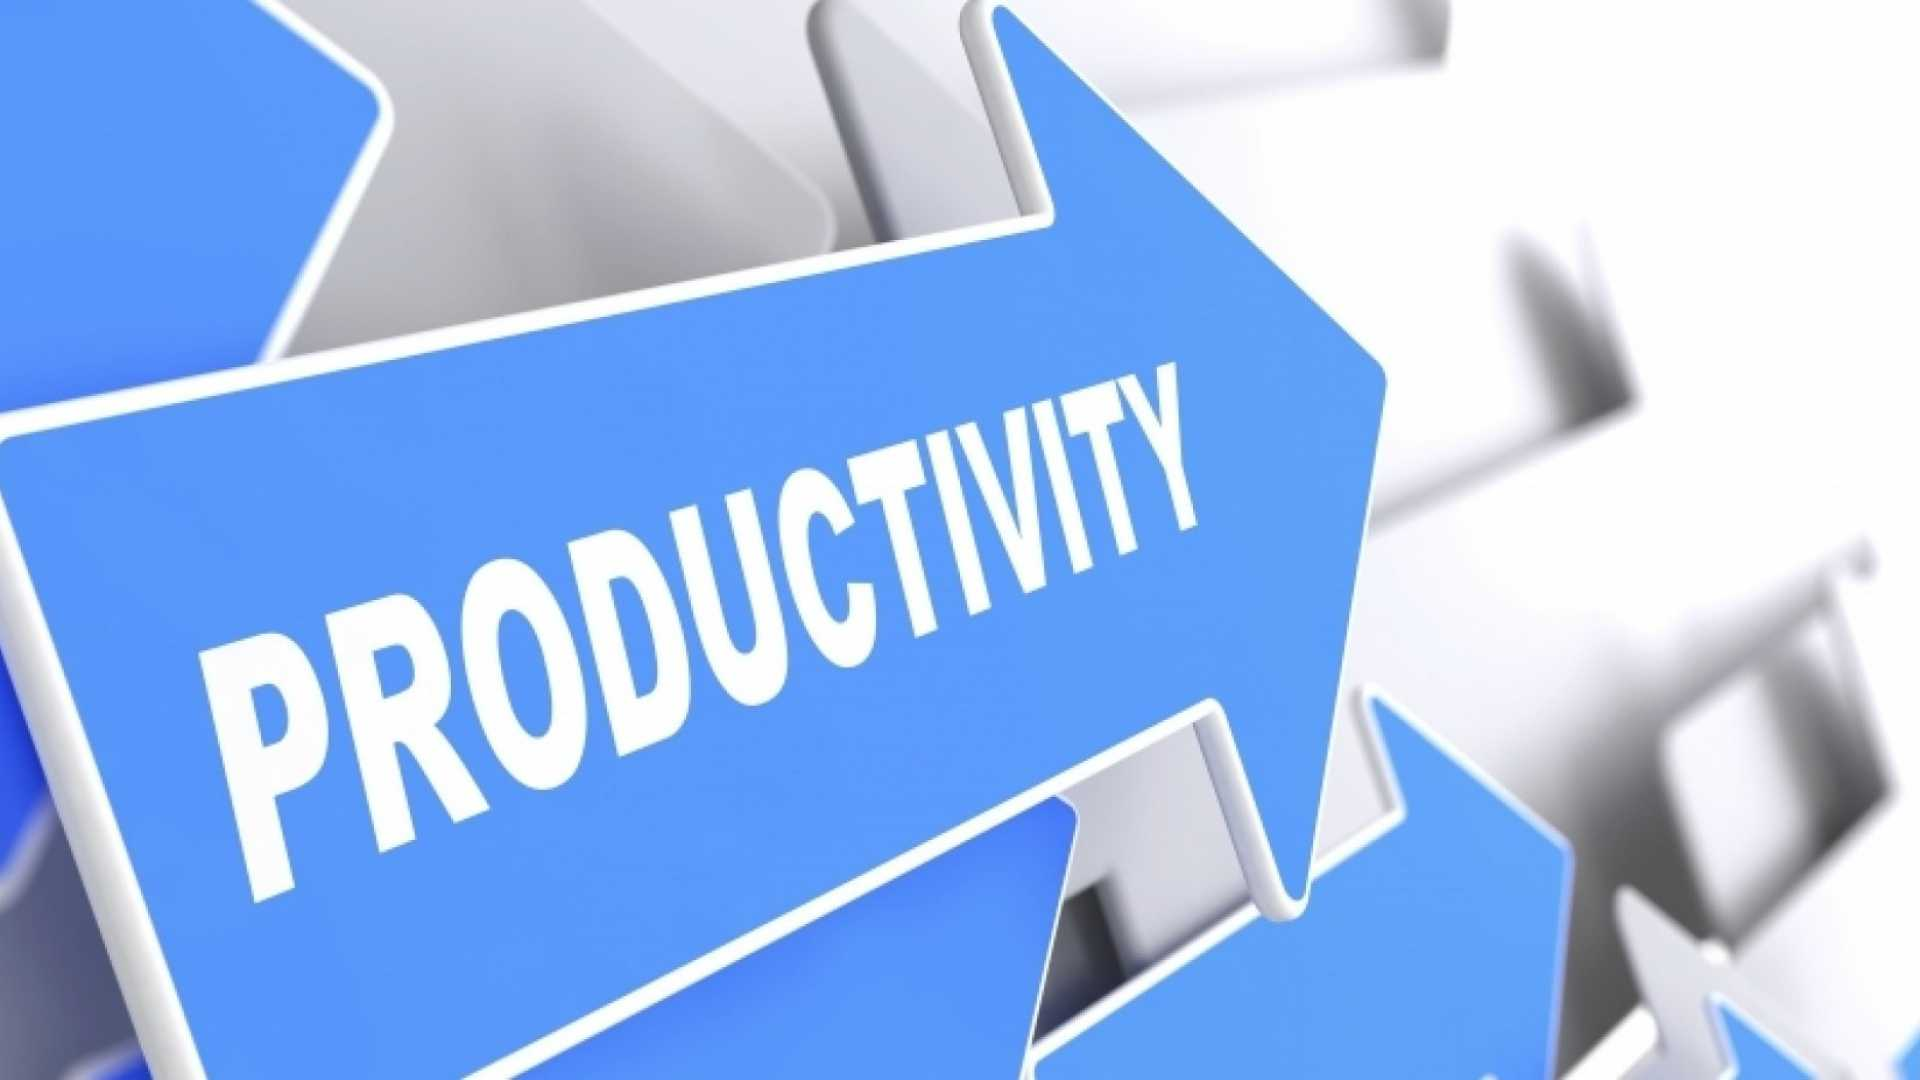 Take Control of Your Day and Increase Productivity